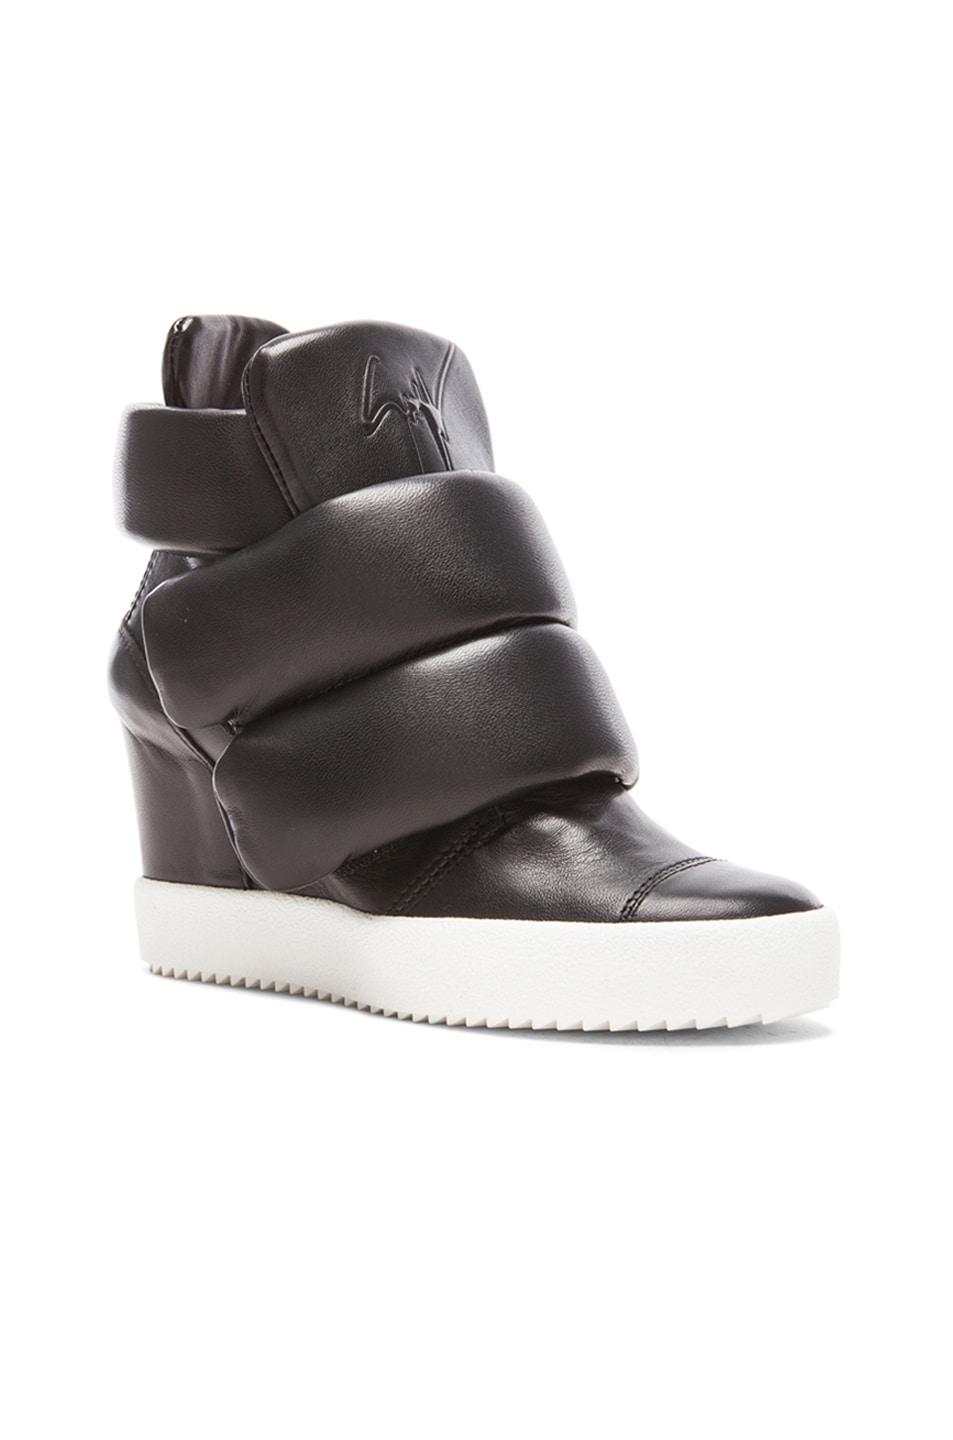 Image 2 of Giuseppe Zanotti x Kid Cudi Double Strap Wedged Leather Sneakers in Black